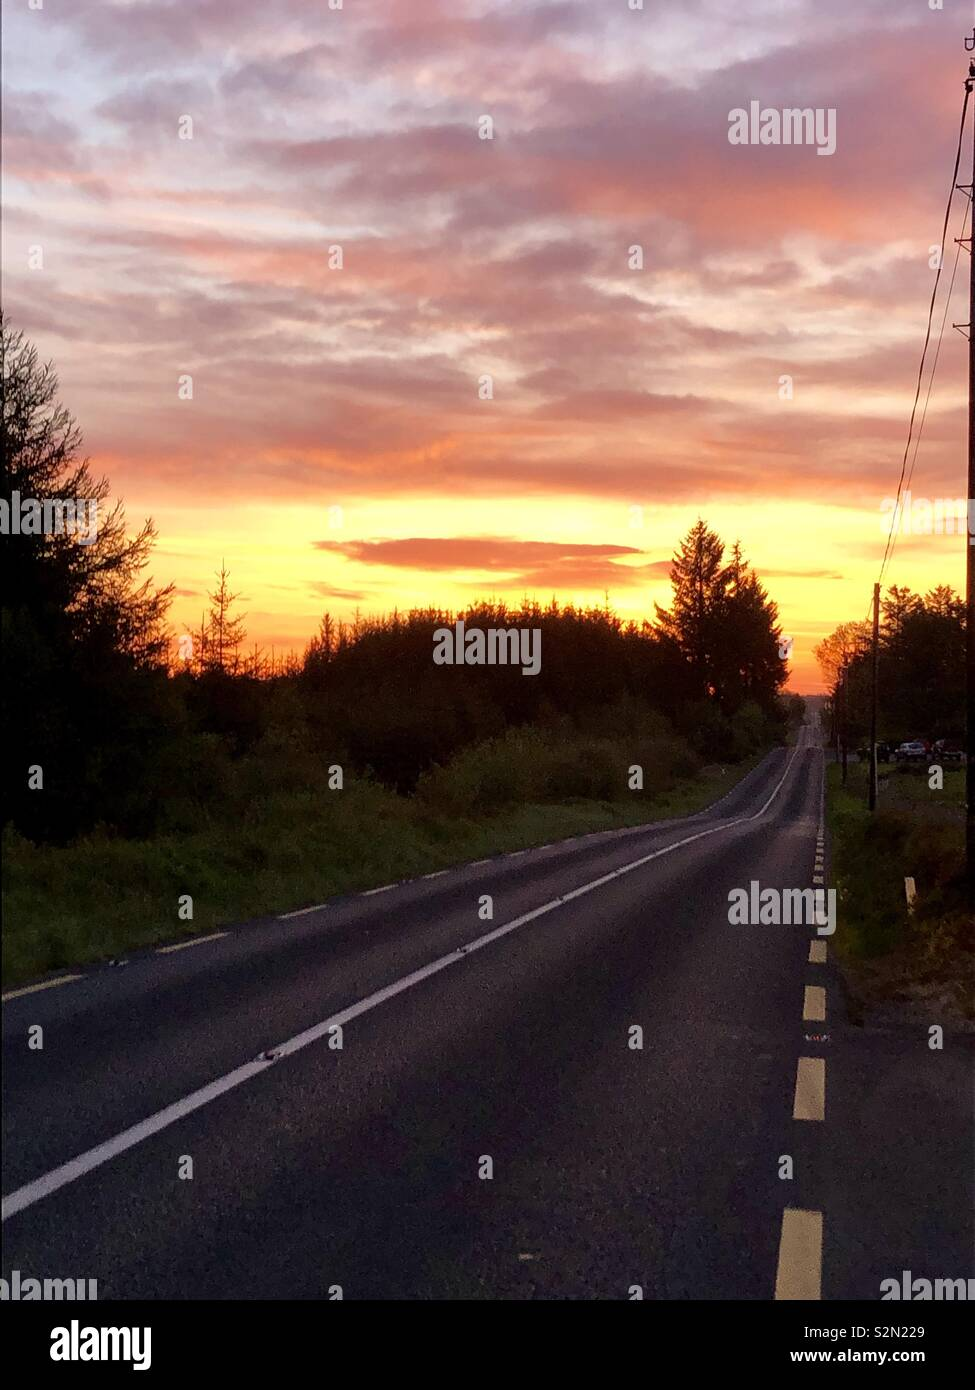 Dawn On The Road, West of Ireland - Stock Image